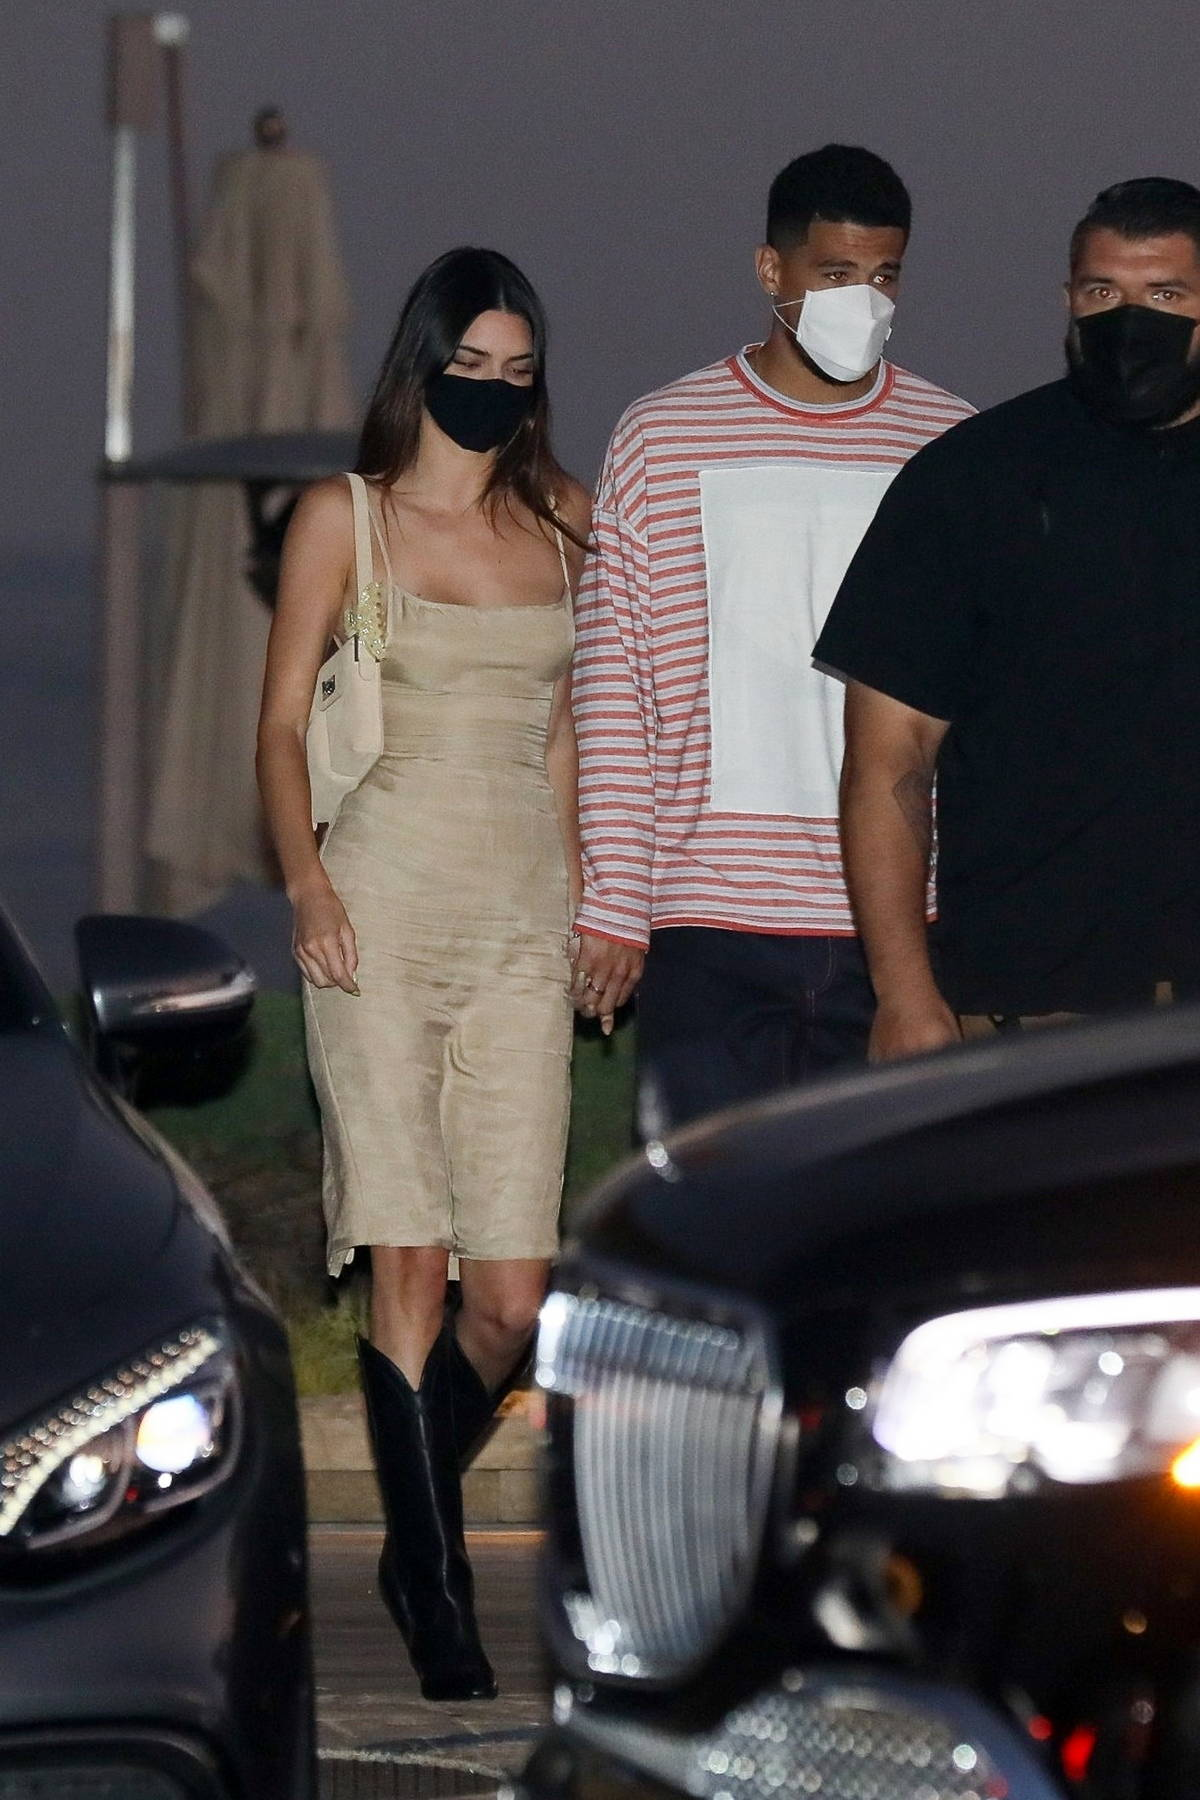 Kendall Jenner and Devin Booker hold hands as they leave Nobu after enjoying a dinner date in Malibu, California